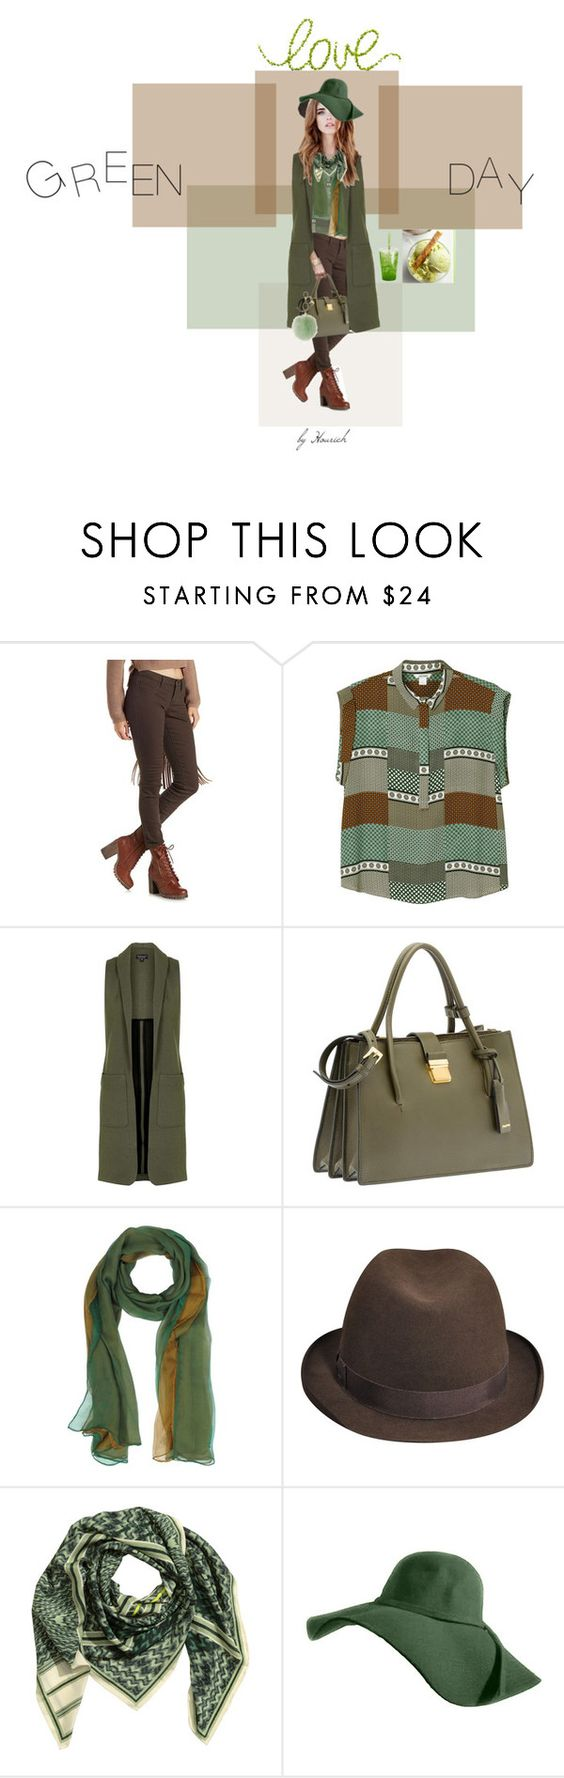 """Green outfit"" by hourieh ❤ liked on Polyvore featuring Cello, Monki, Topshop, Miu Miu, Laura Biagiotti, Dorothy Perkins, Whiteley, love and greenday"